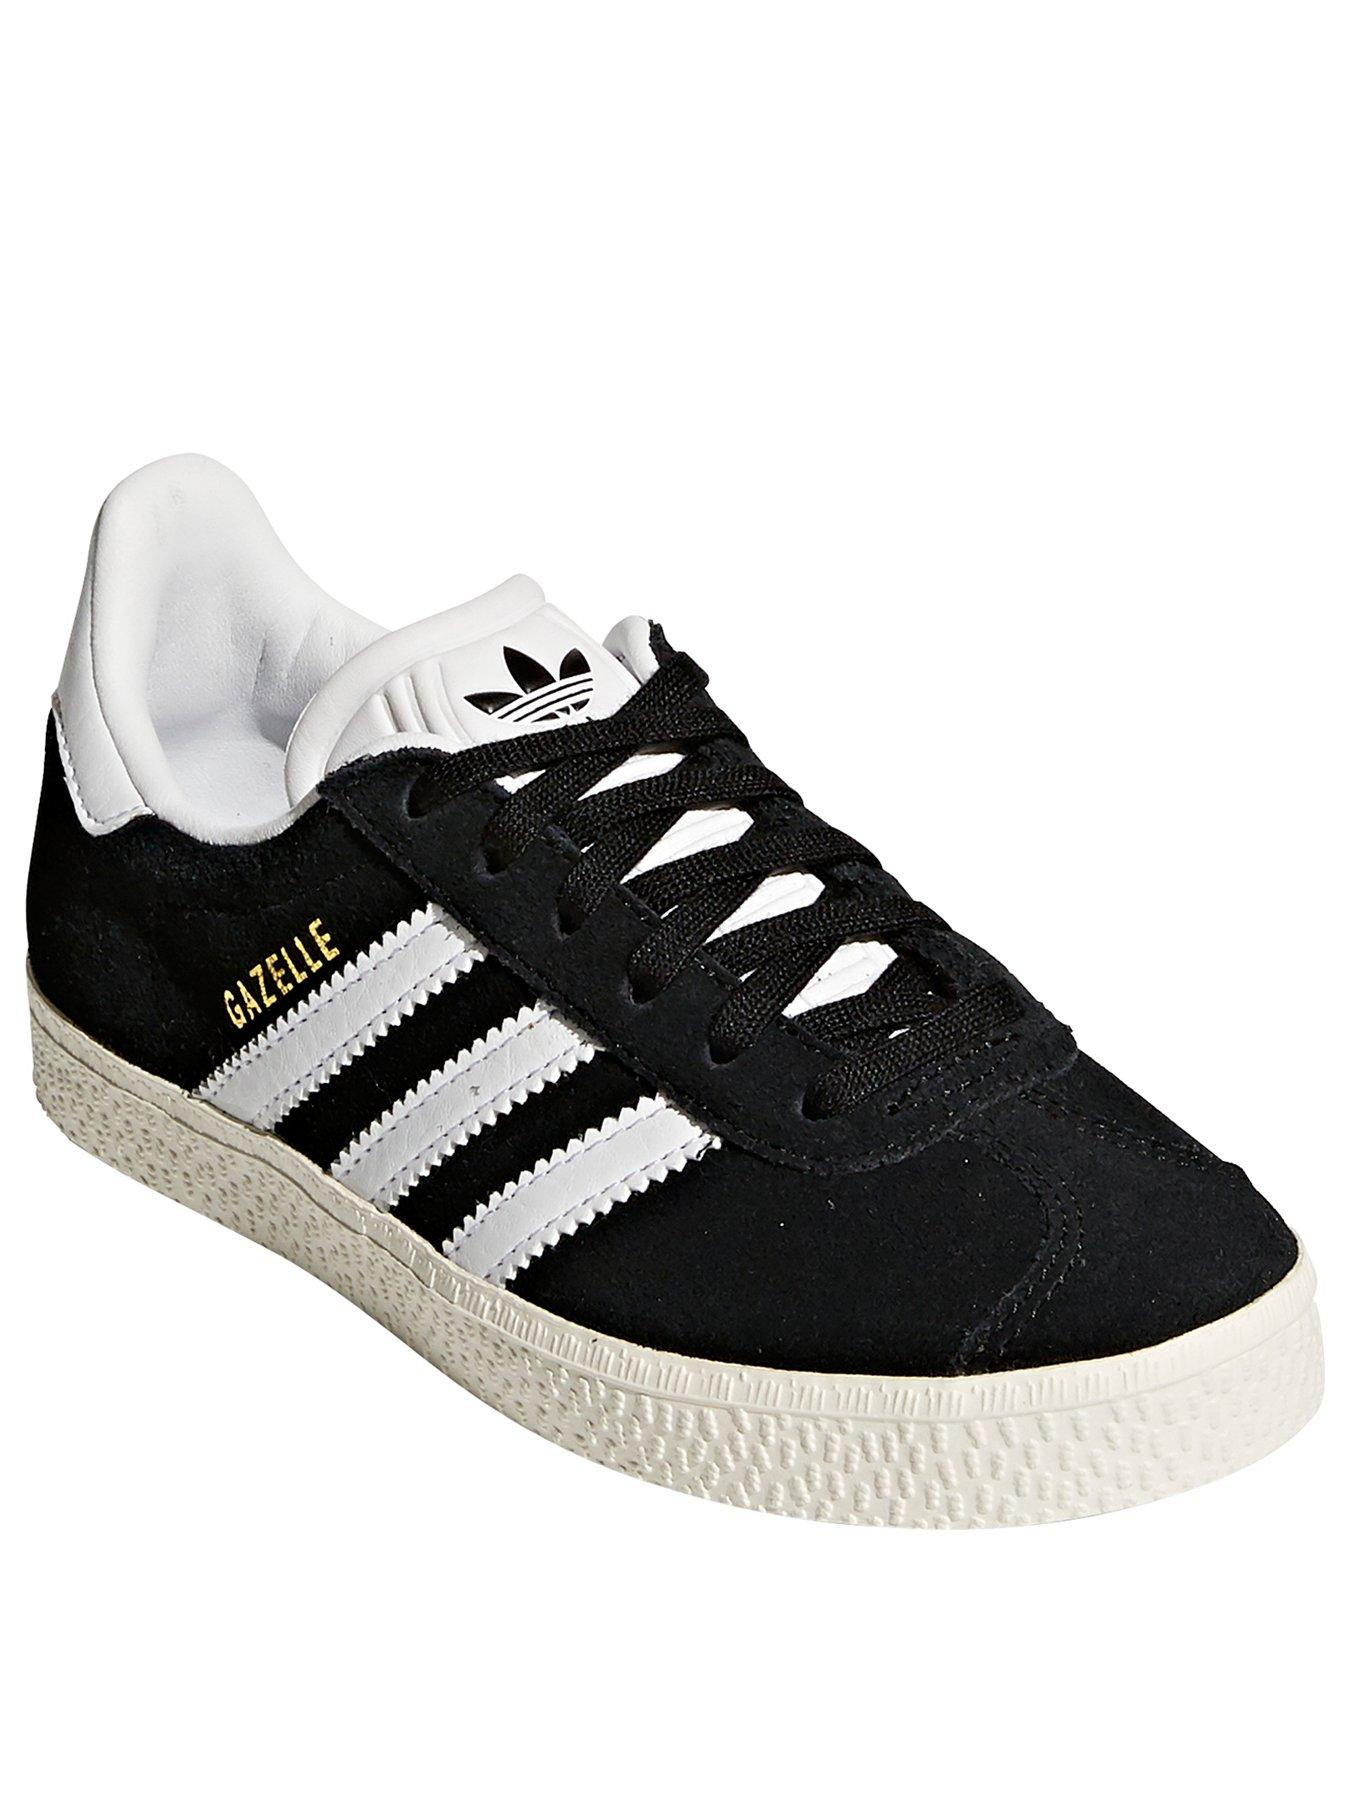 girls size 3 trainers